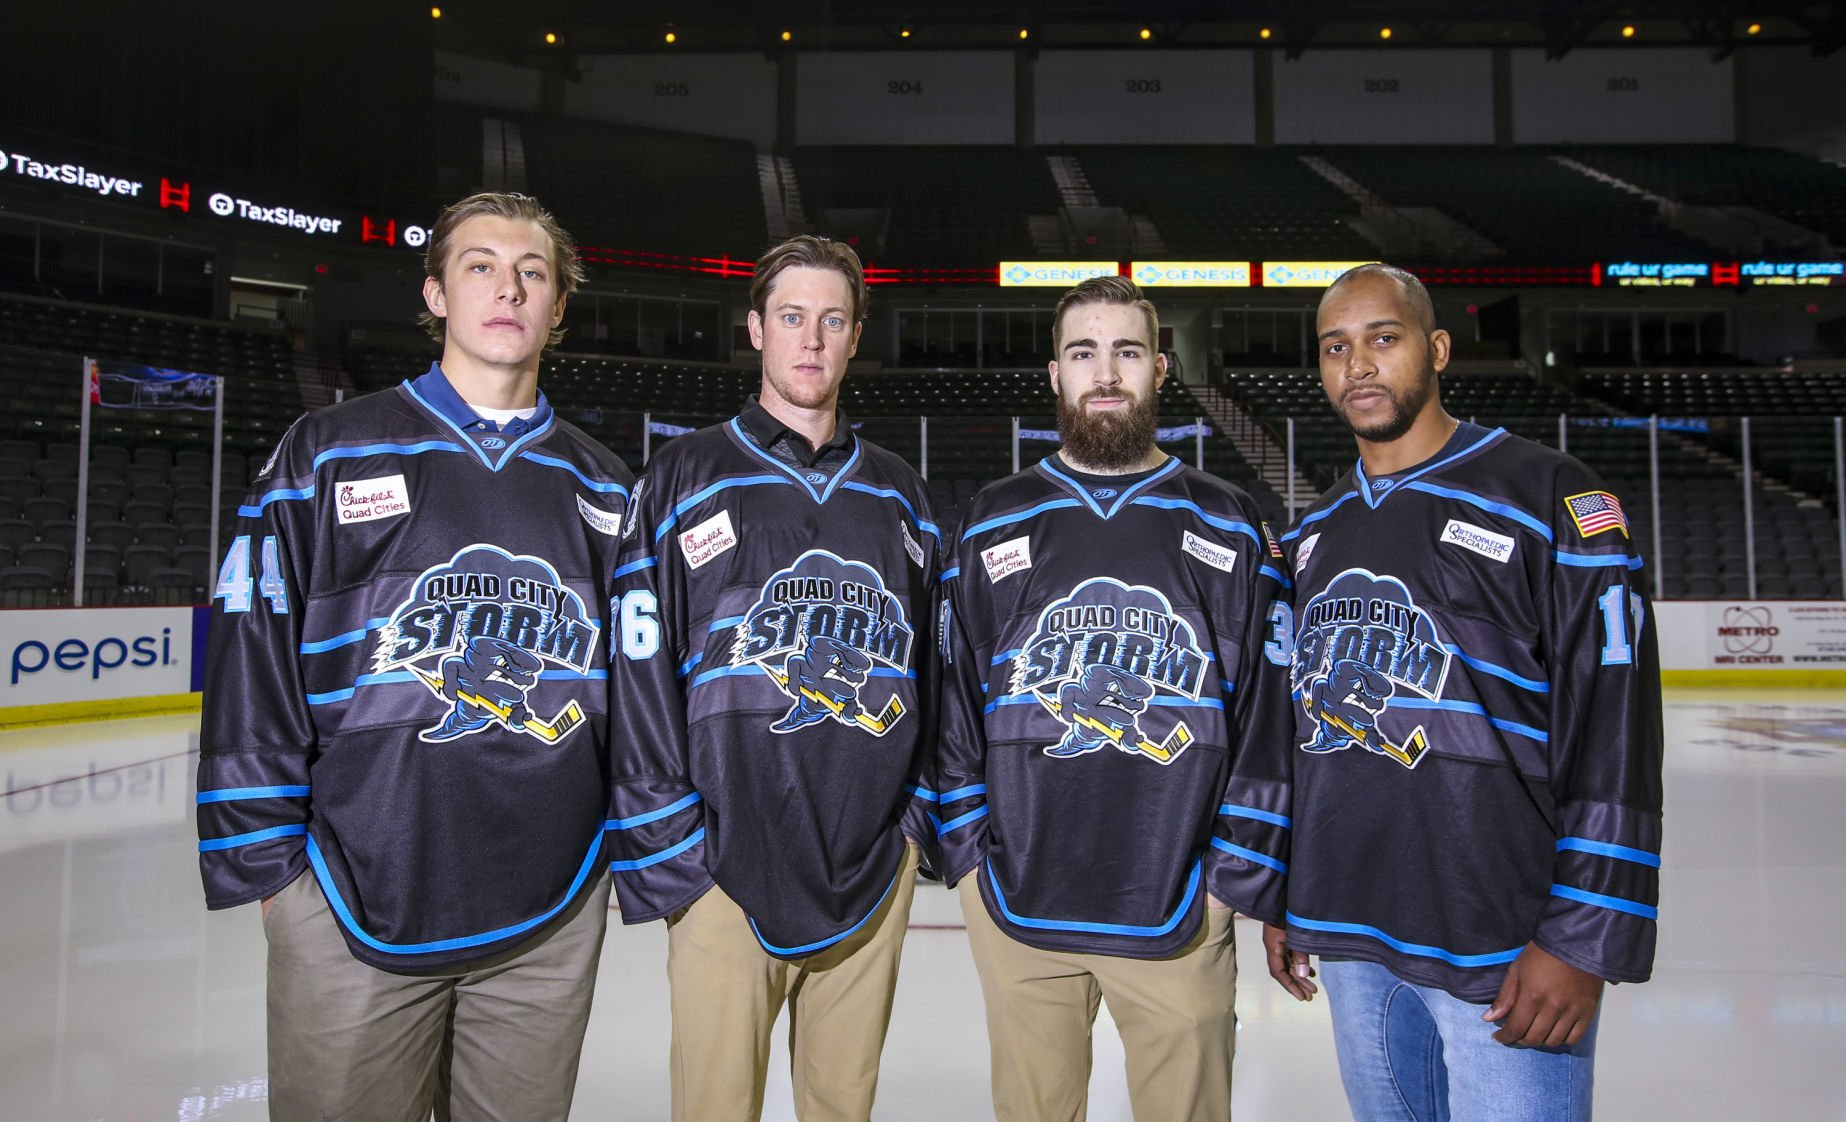 SPHL: 'These Are Guys I Wanted' - Storm Relishing Opportunity As SPHL Expansion Team